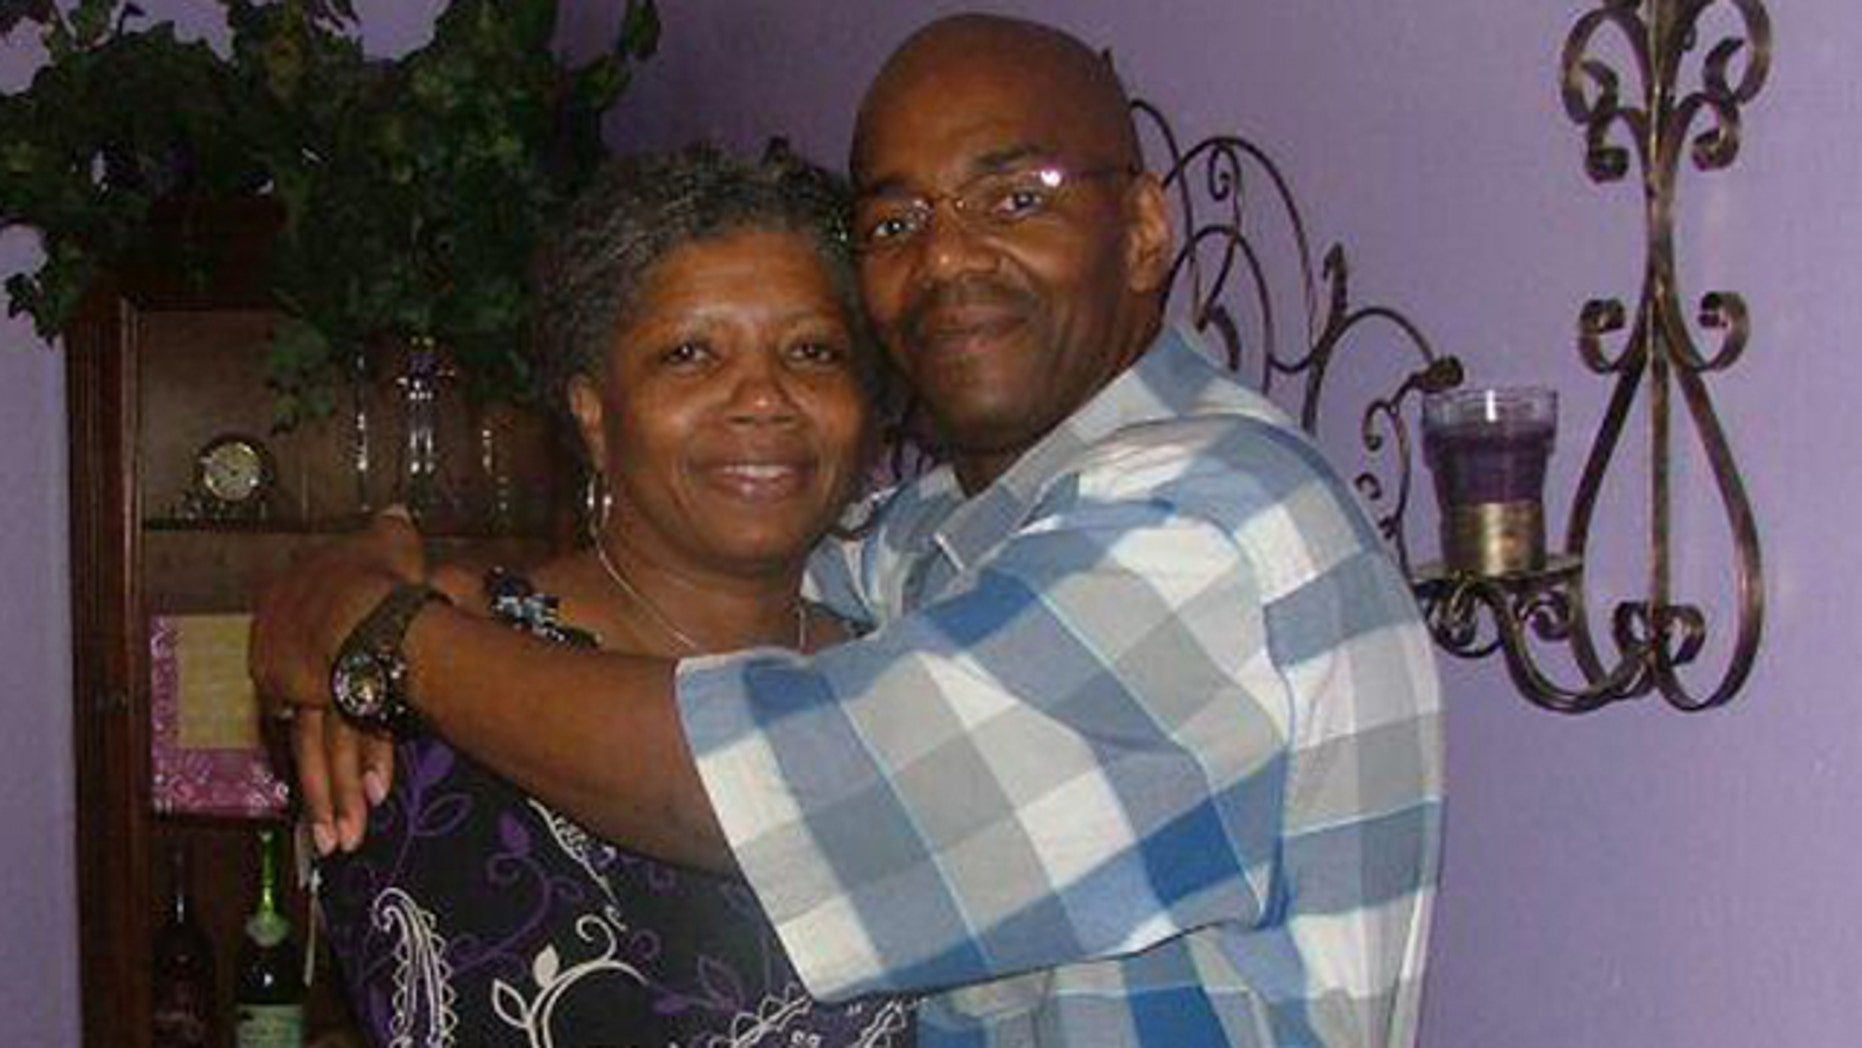 Jan. 3: This undated handout photo provided by The Innocence Project shows Cornelius Dupree Jr., right, and his wife Selma Perkins Dupree. Dupree, who made parole six months ago, was declared innocent of a rape and robbery that put him in prison for 30 years, more than any other DNA exoneree in Texas. (AP/The Innocence Project)